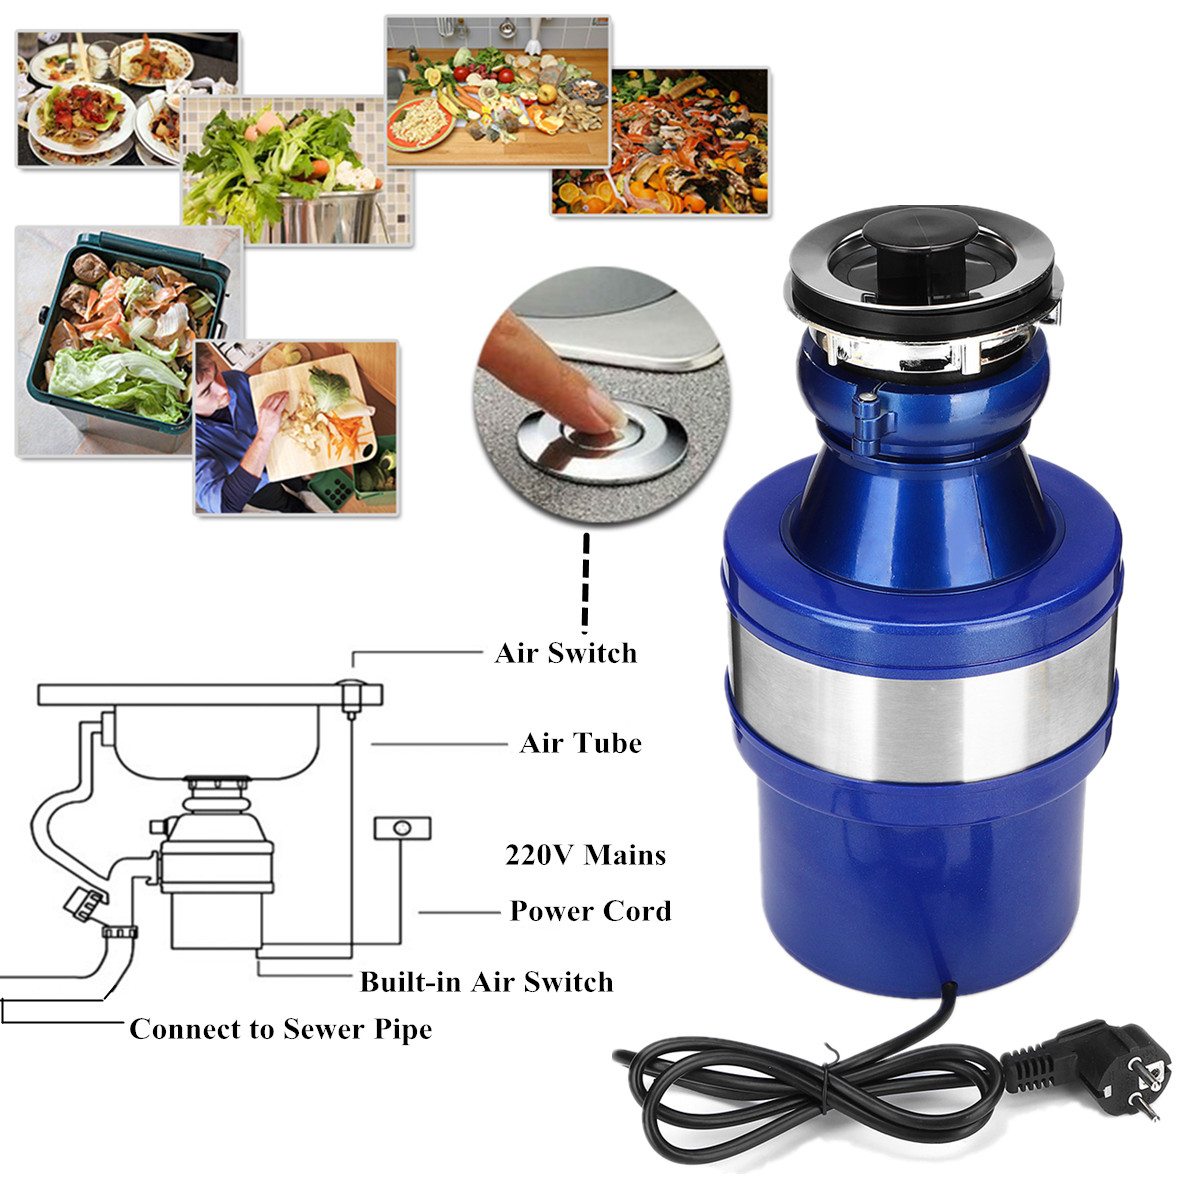 220V 1/2HP Food Disposer Garbage Disposal Continuous Feed Home Kitchen Food Waste Disposal